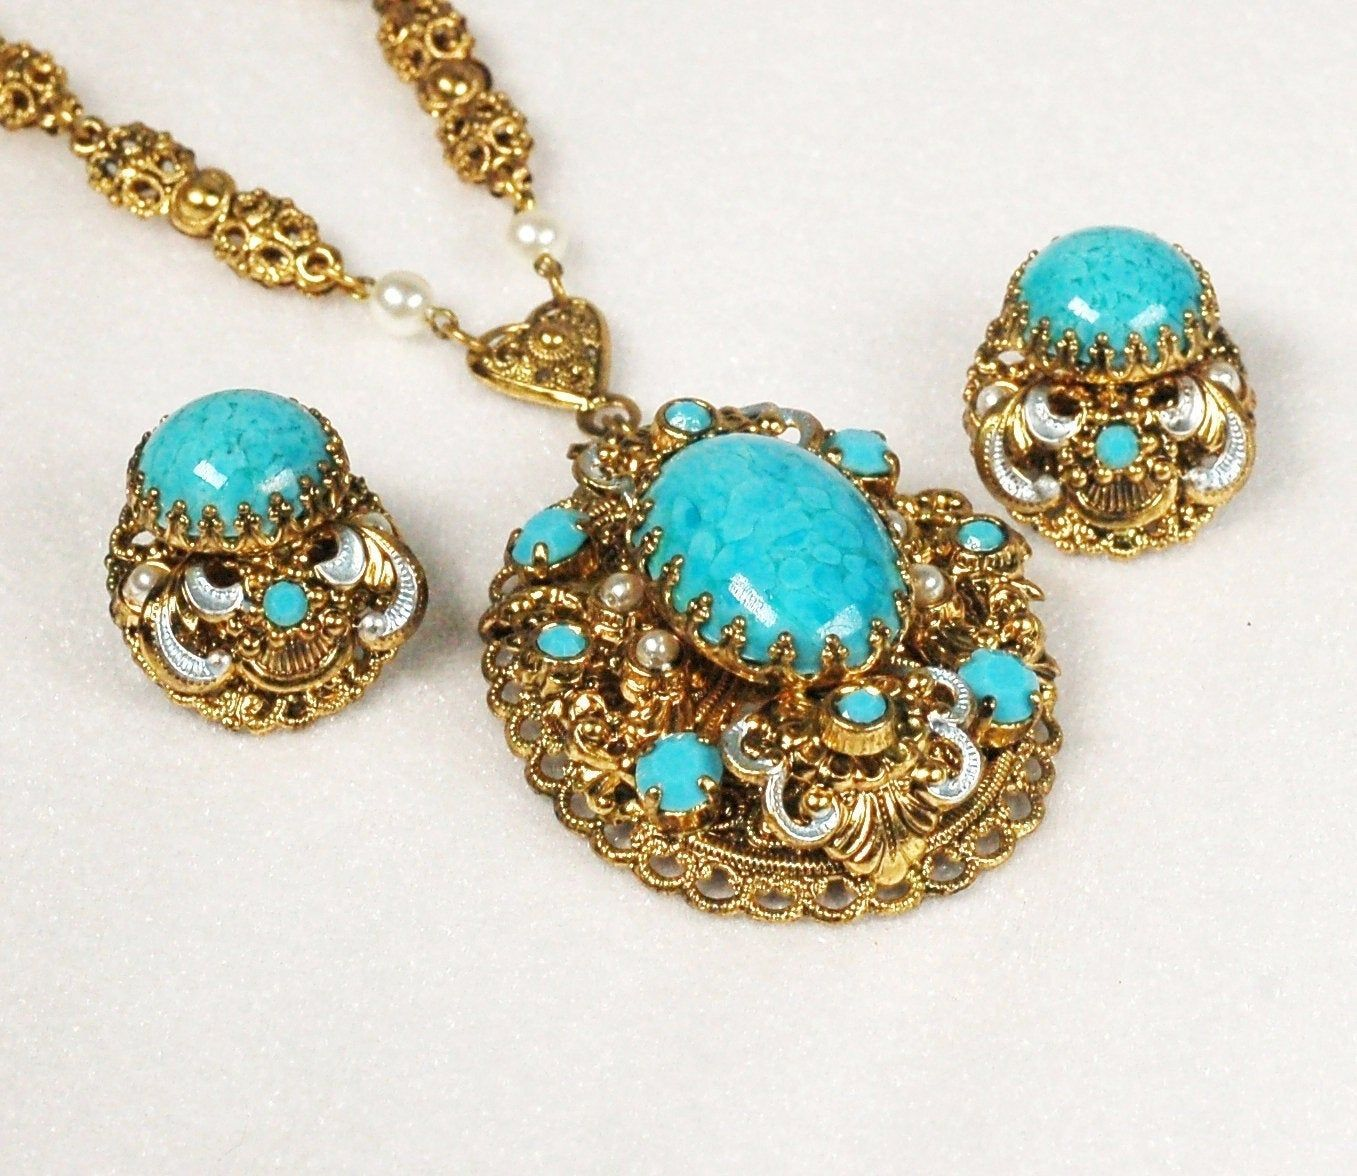 Vintage West Germany Turquoise Pearl Pendant Necklace